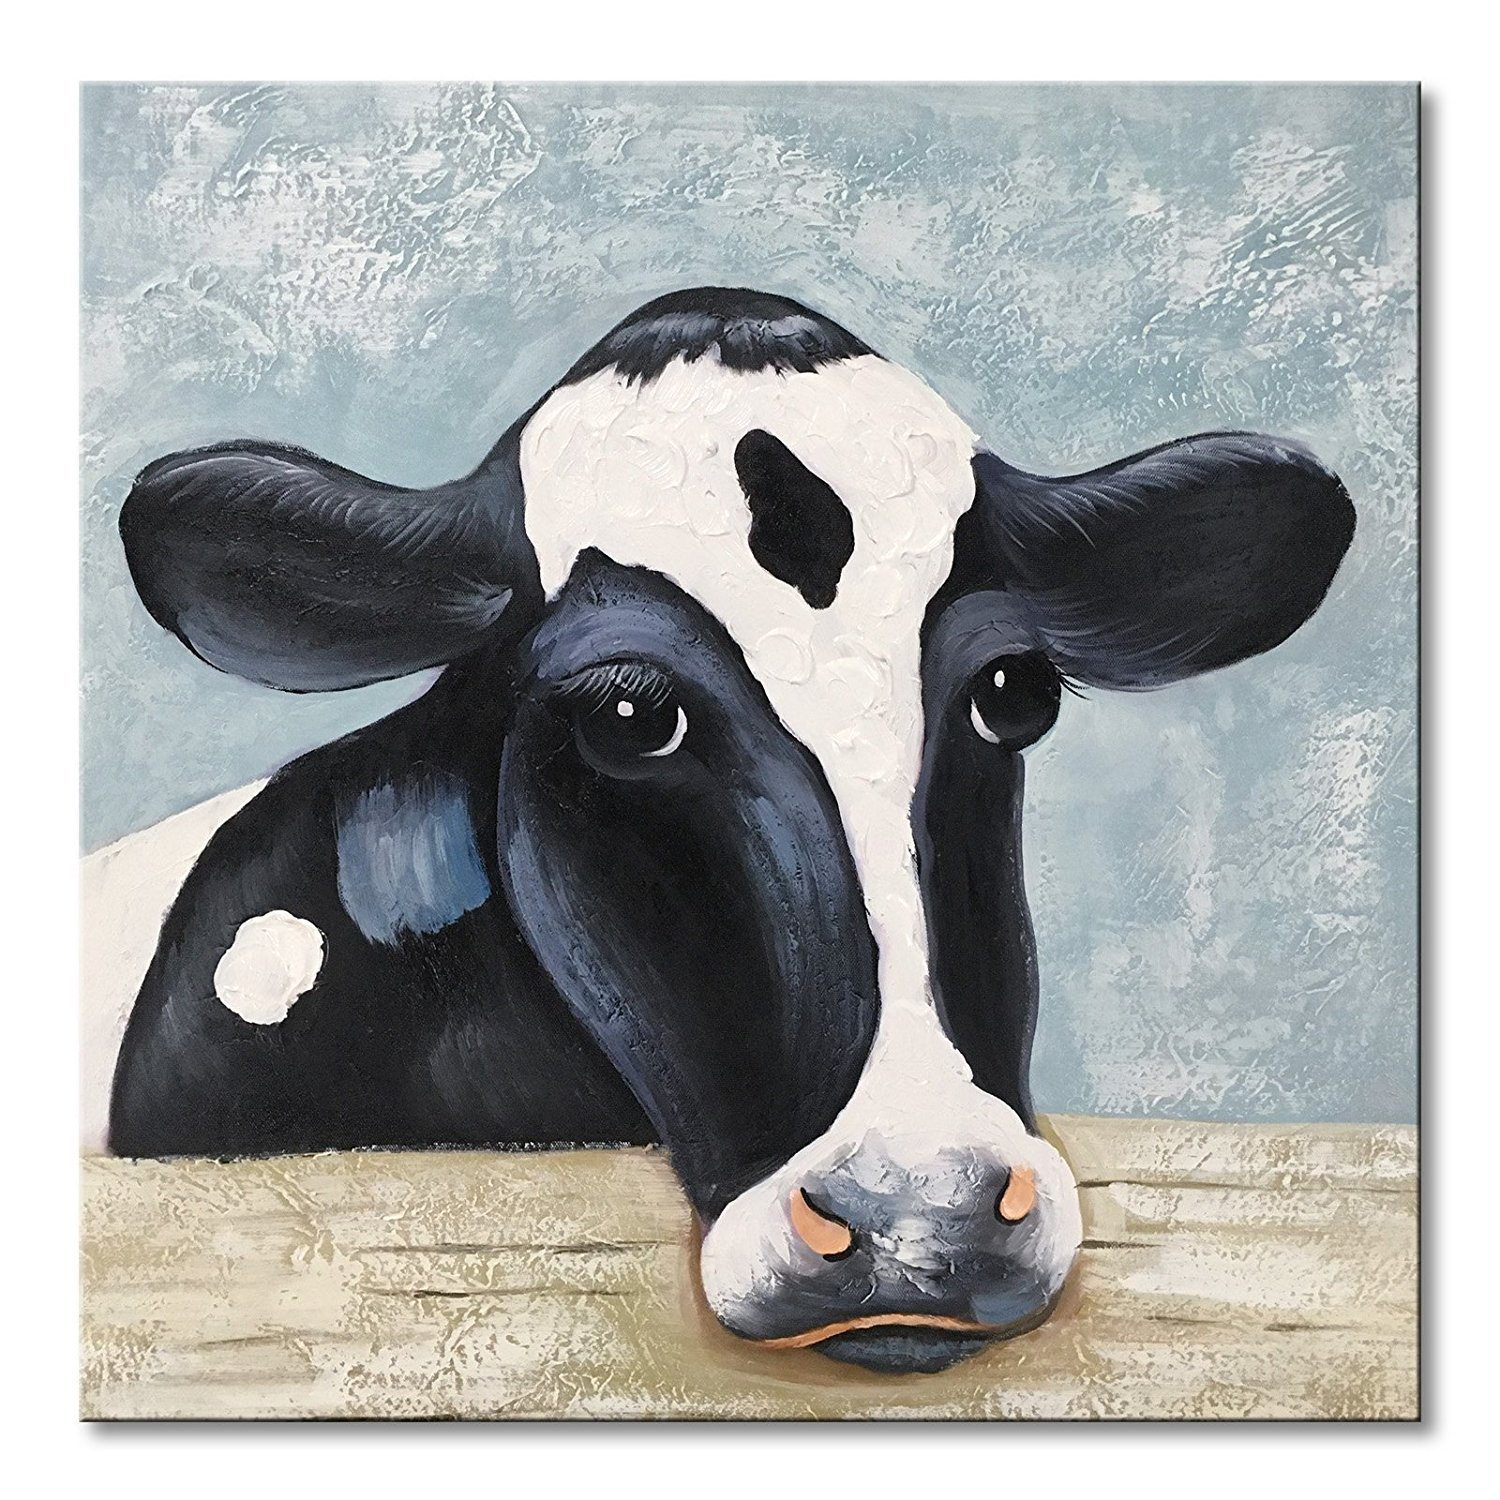 UAC WALL ARTS Hand Painted Oil Painting Animal Funny Artwork Modern Cow Oil Paintings for Home Decor Gift for Father's Day